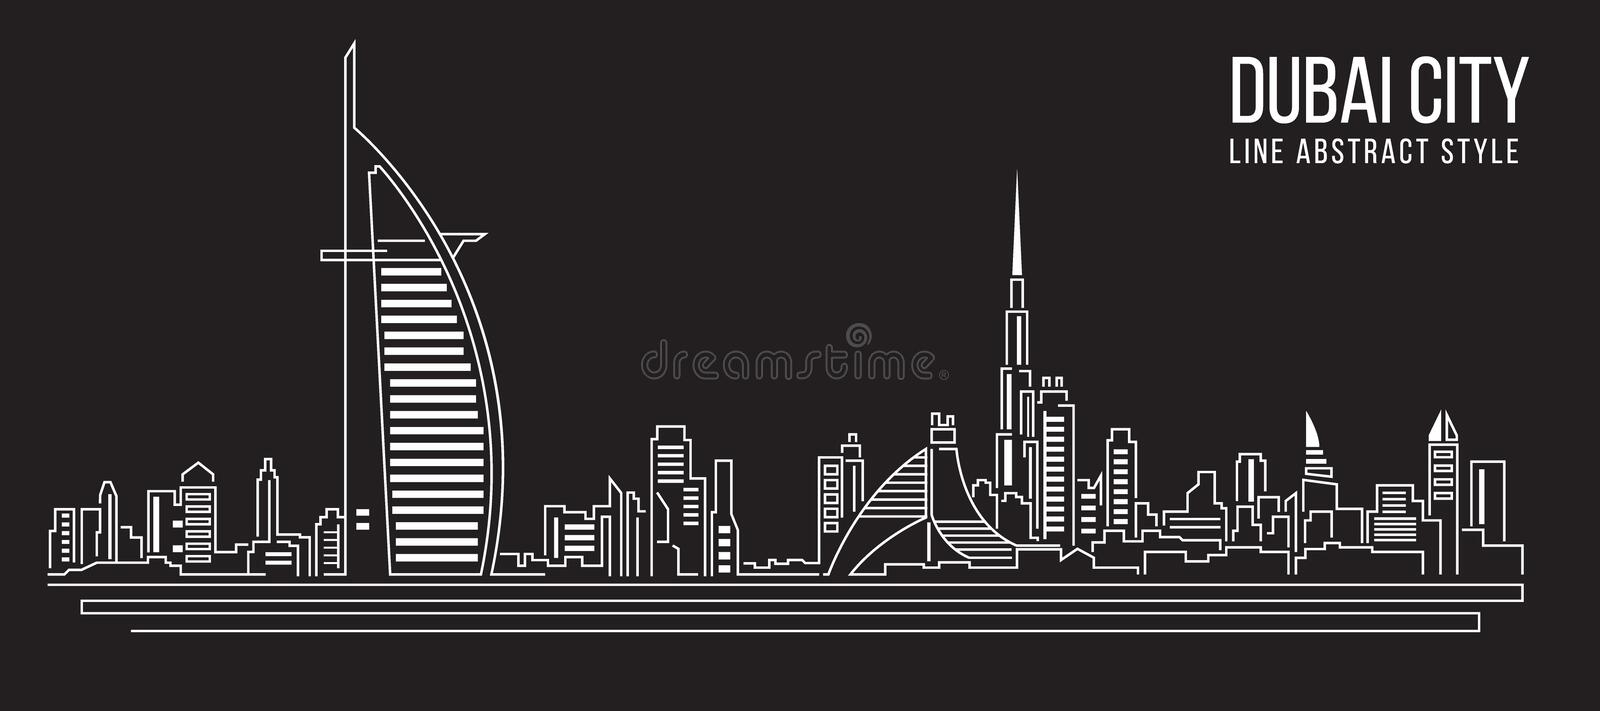 Cityscape Building Line art Vector Illustration design (Dubai city)